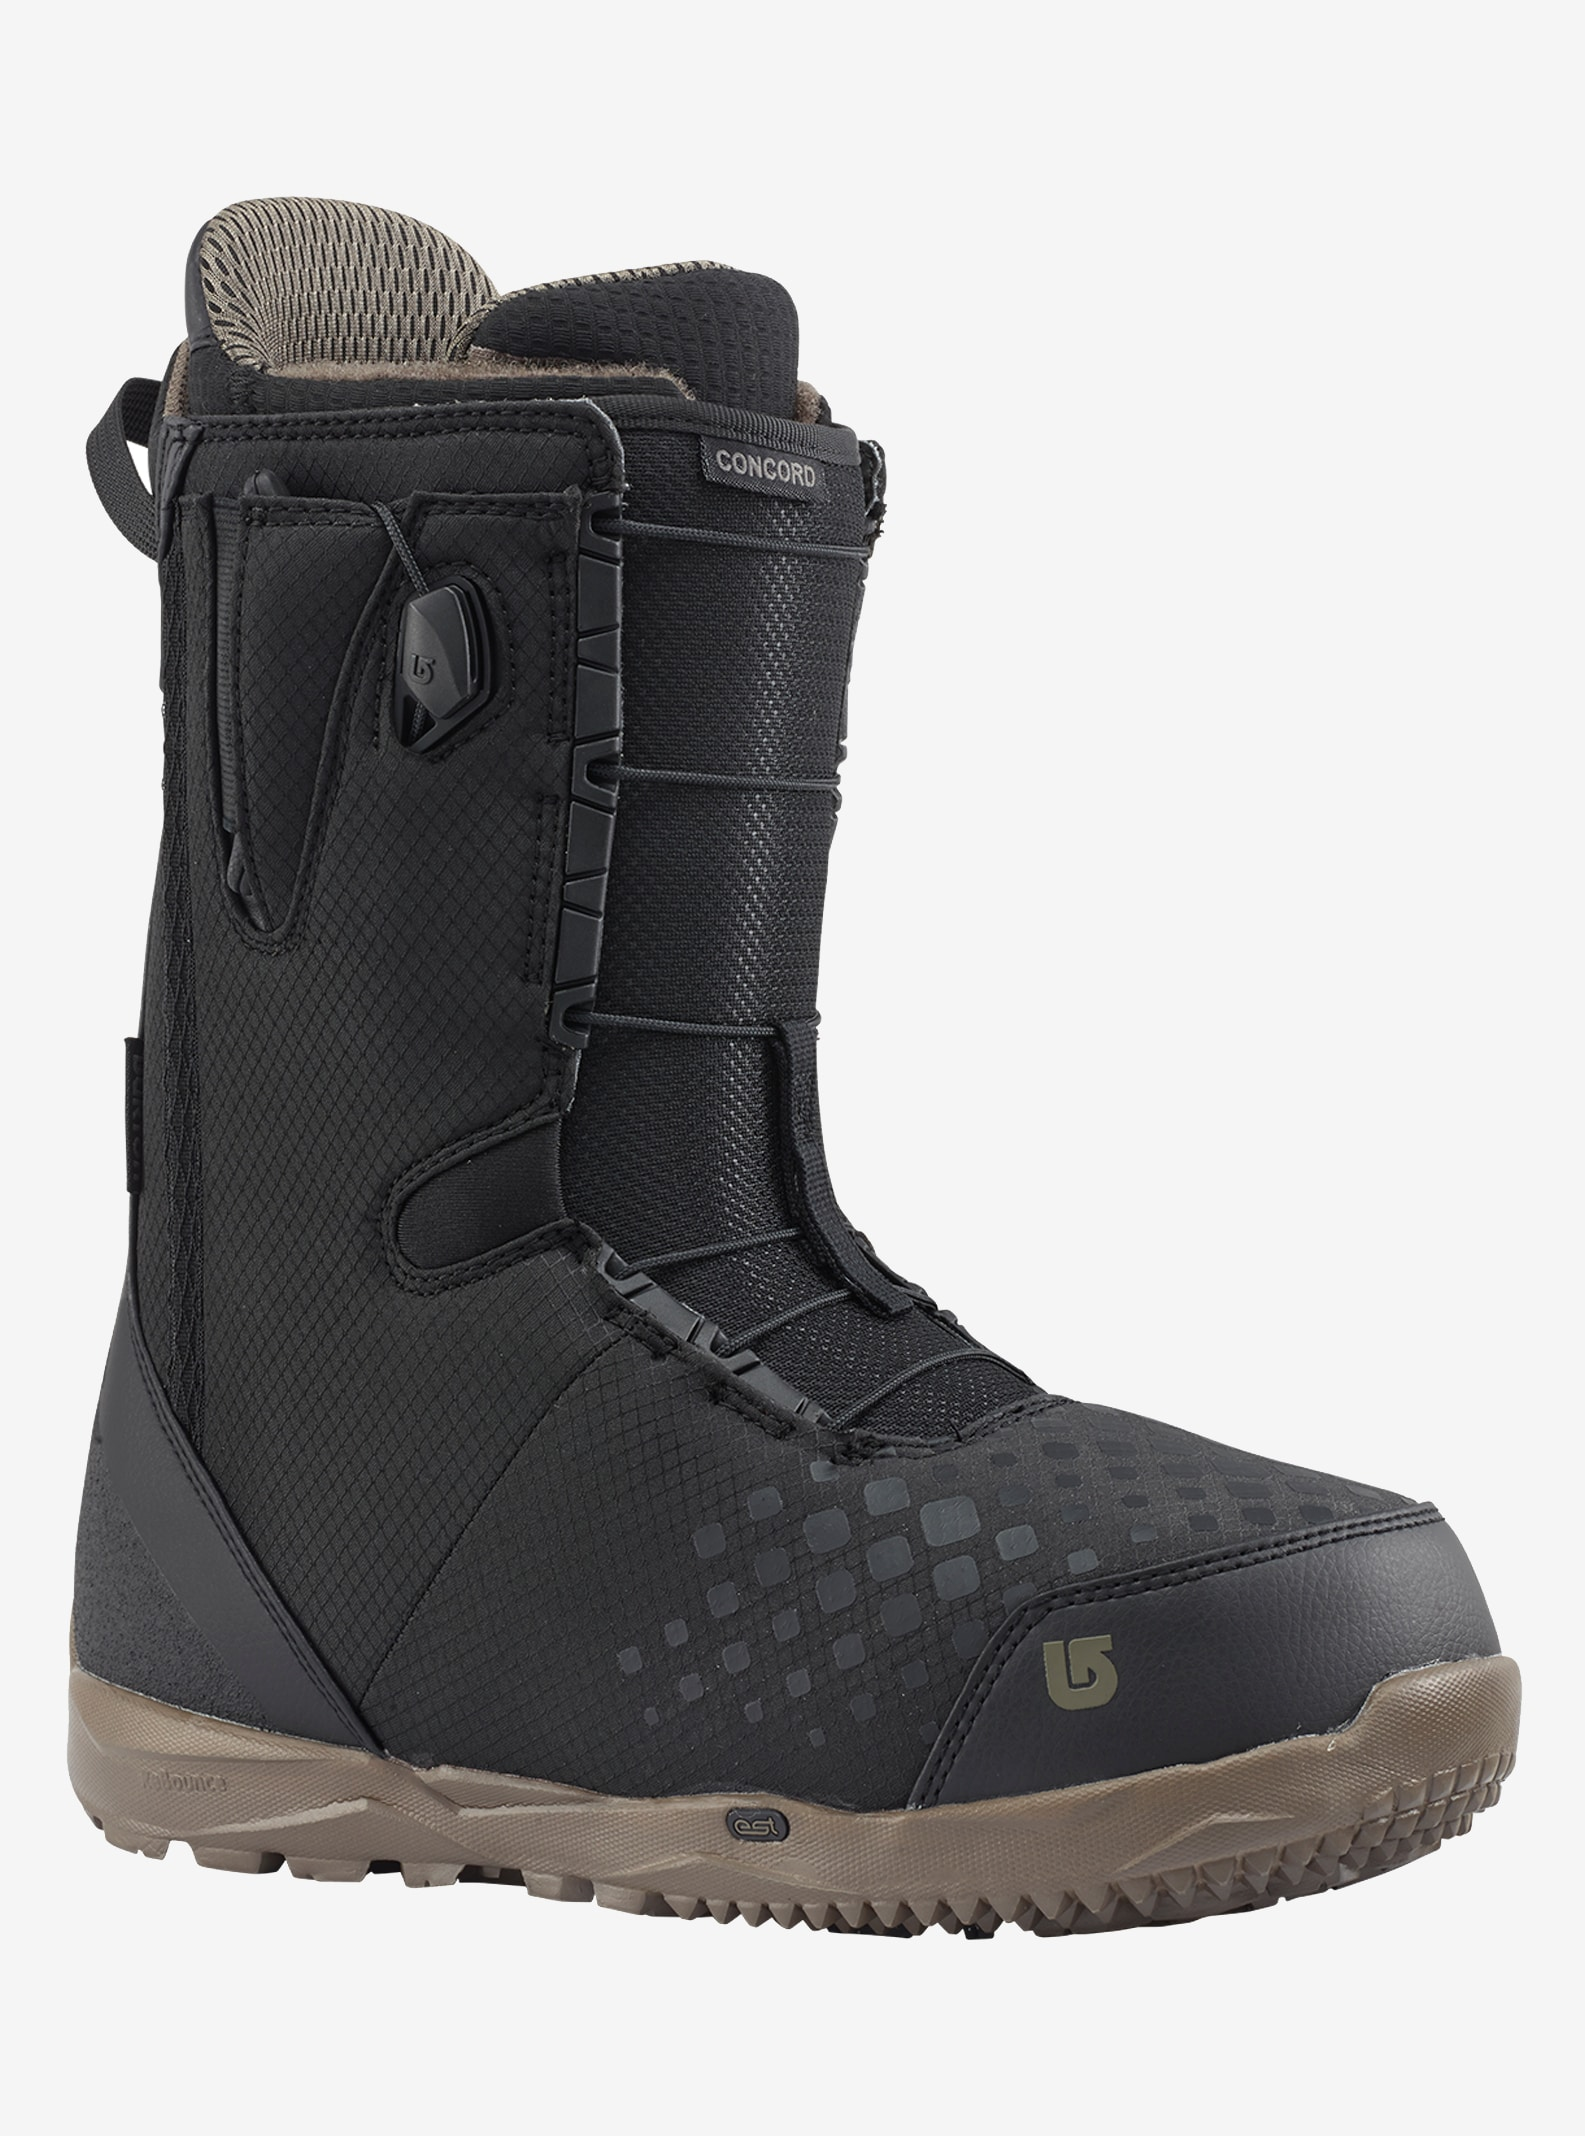 Men's Burton Concord Snowboard Boot shown in Black